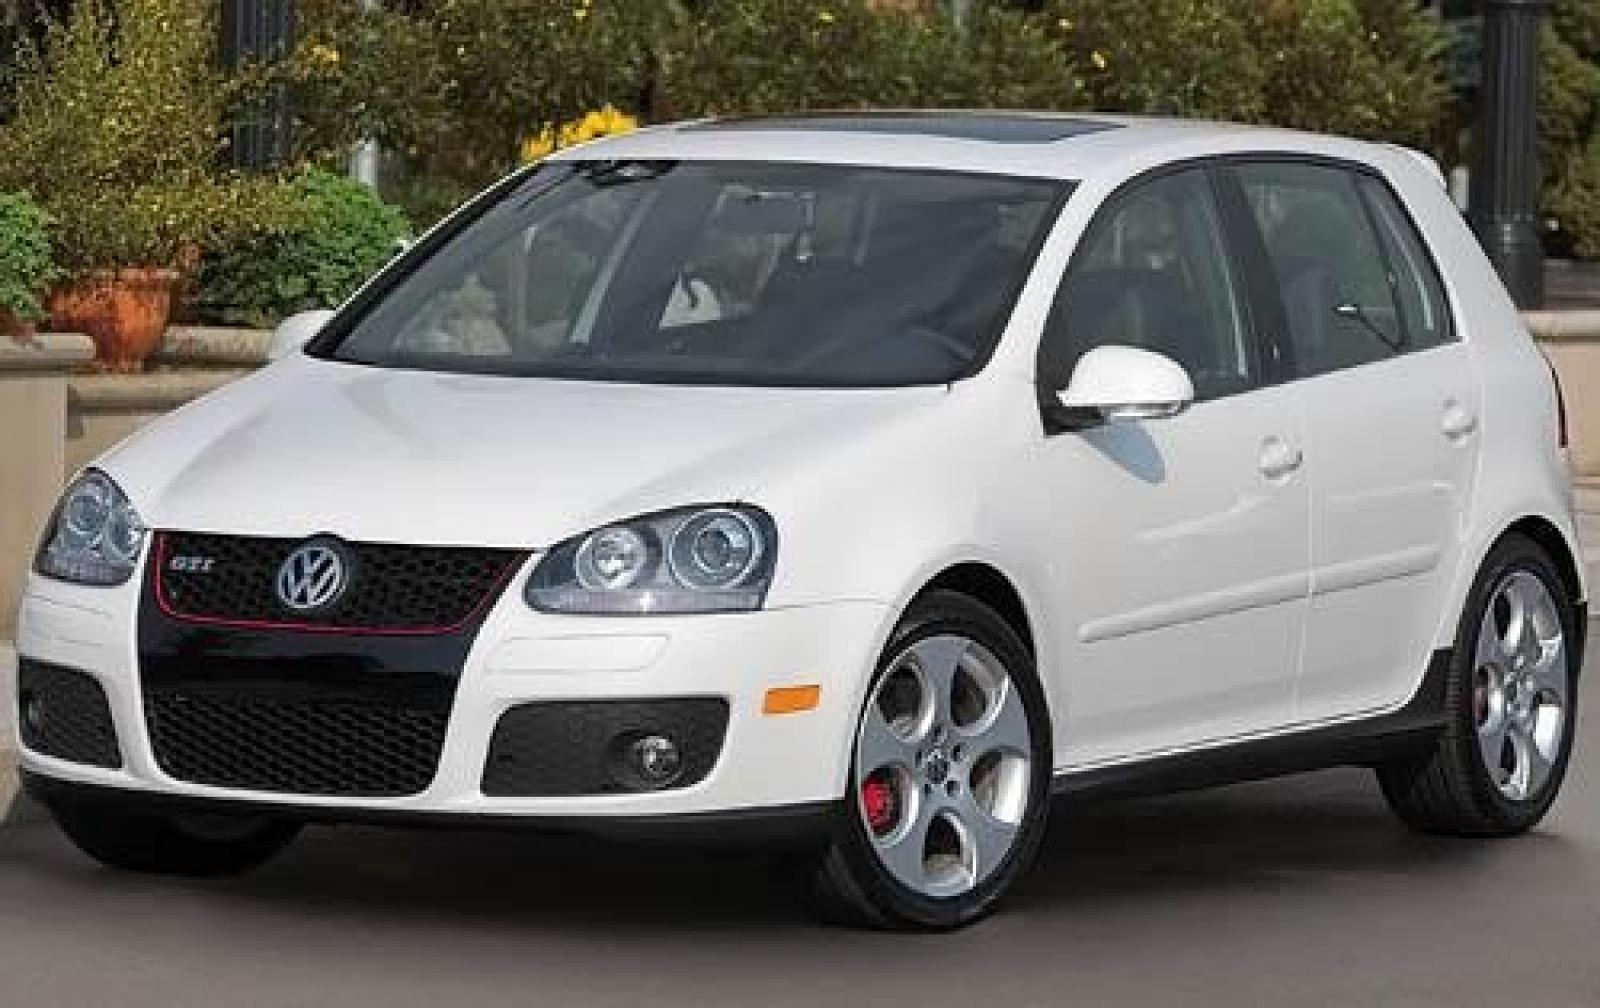 2009 volkswagen gti information and photos zombiedrive. Black Bedroom Furniture Sets. Home Design Ideas